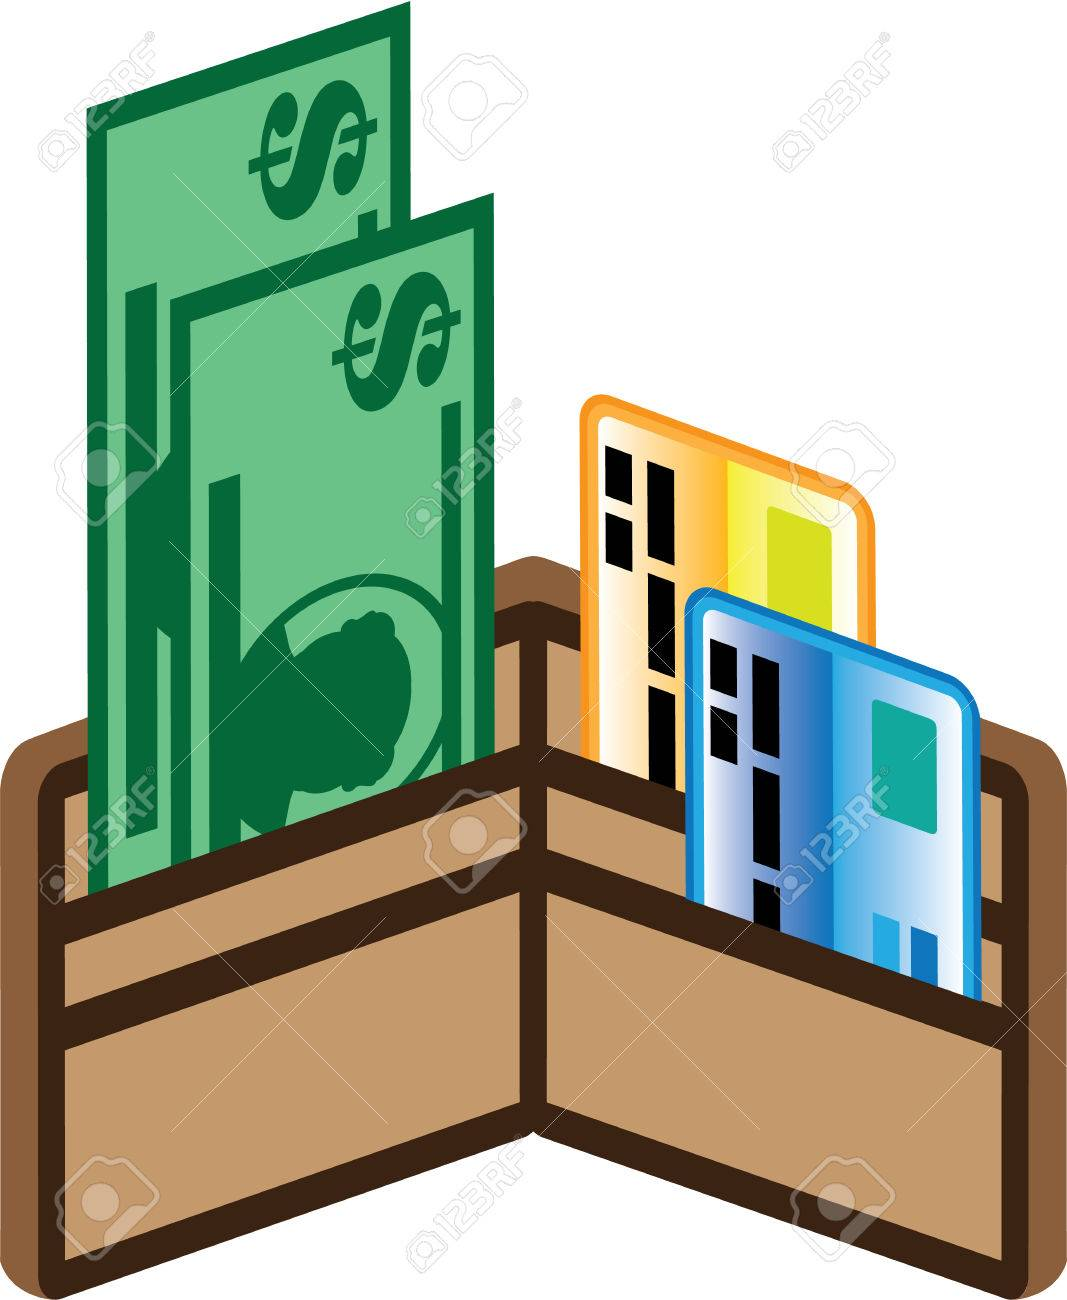 Filled wallet money cards illustration icon clip.